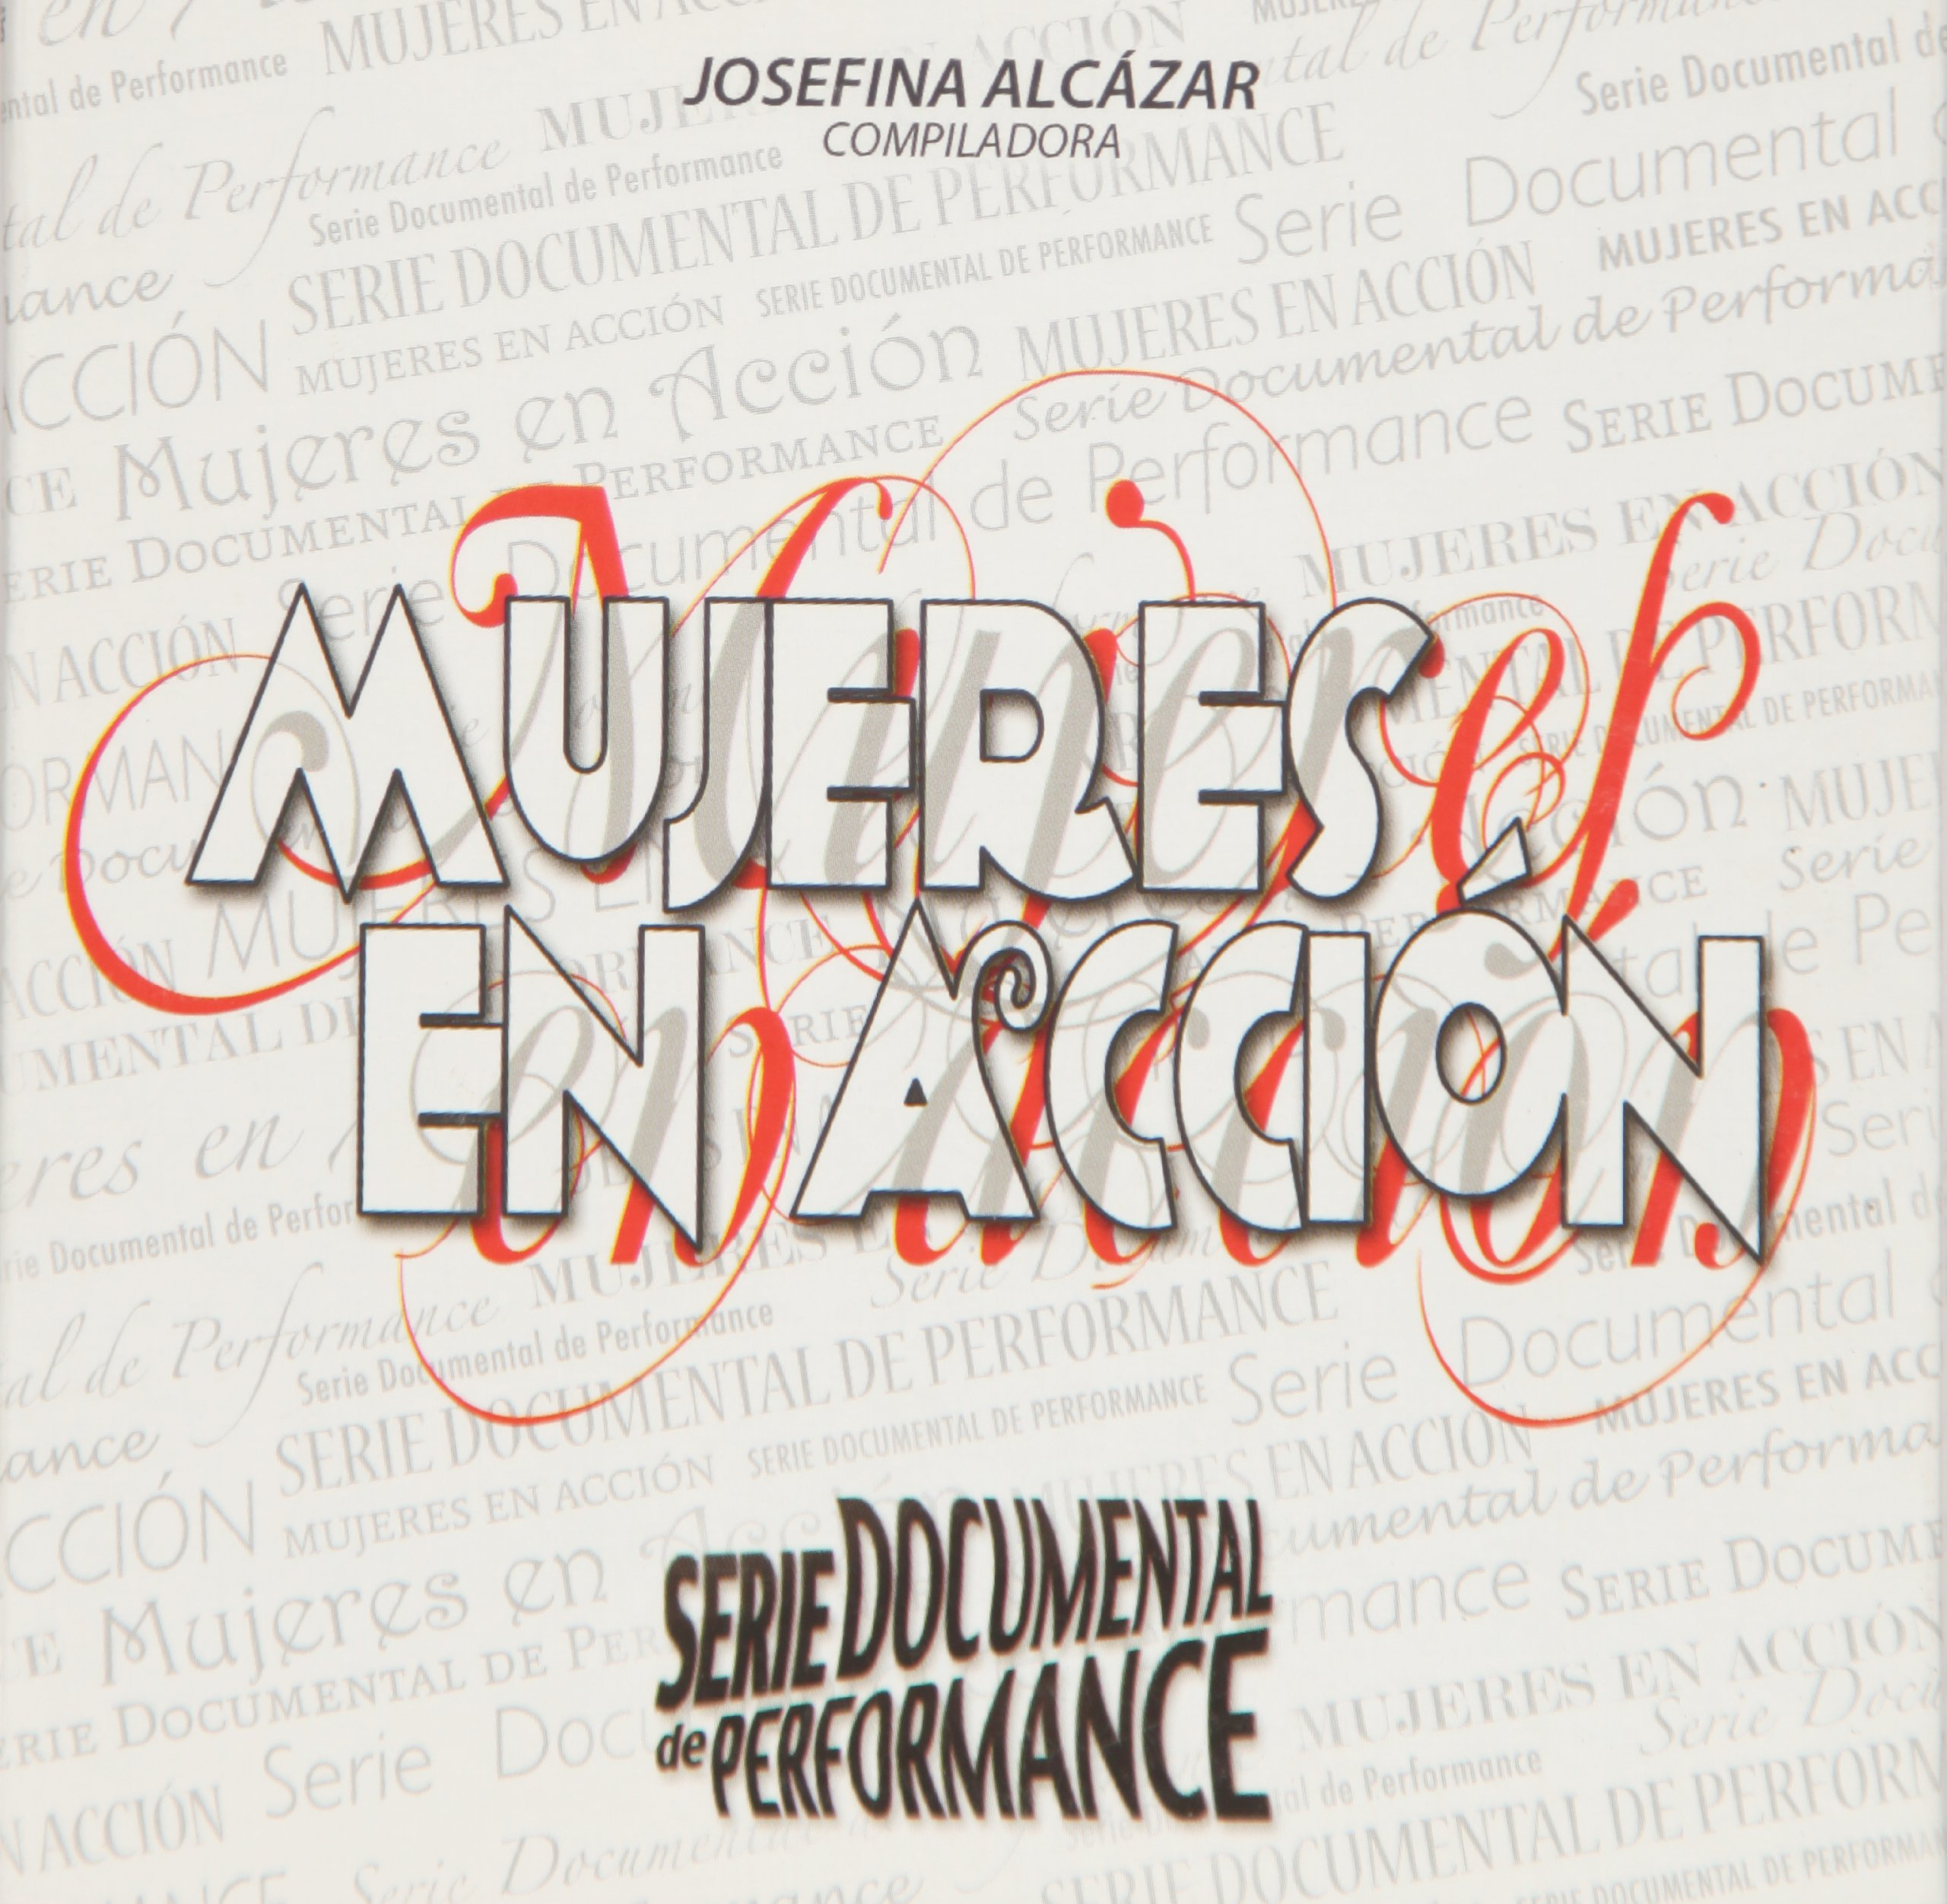 Mujeres en accion. Serie documental de Performance (Spanish Edition) (Spanish) Multimedia CD – October 1, 2010